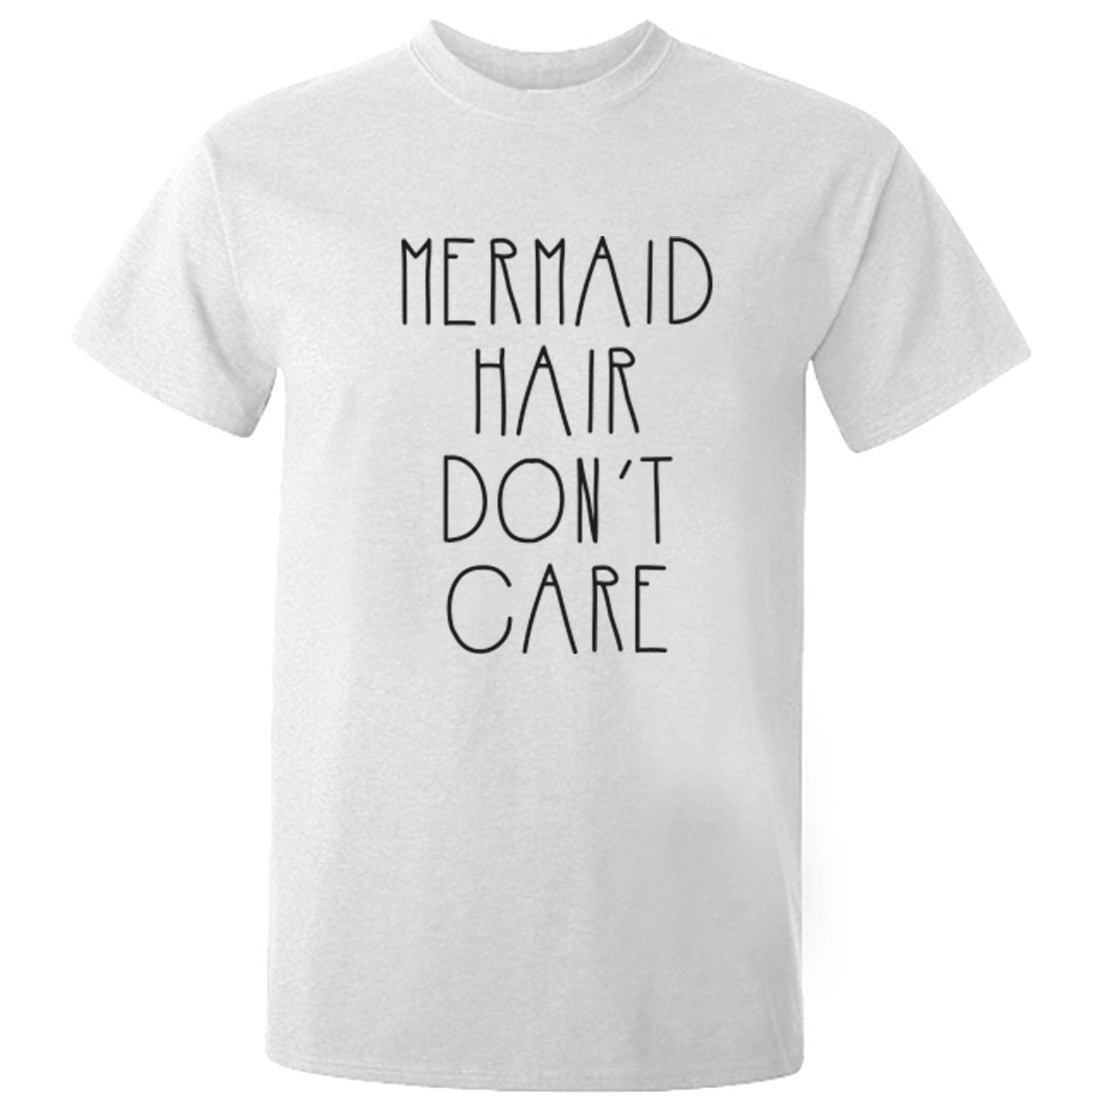 Mermaid Hair Don't Care Unisex Fit T-Shirt K0453 - Illustrated Identity Ltd.